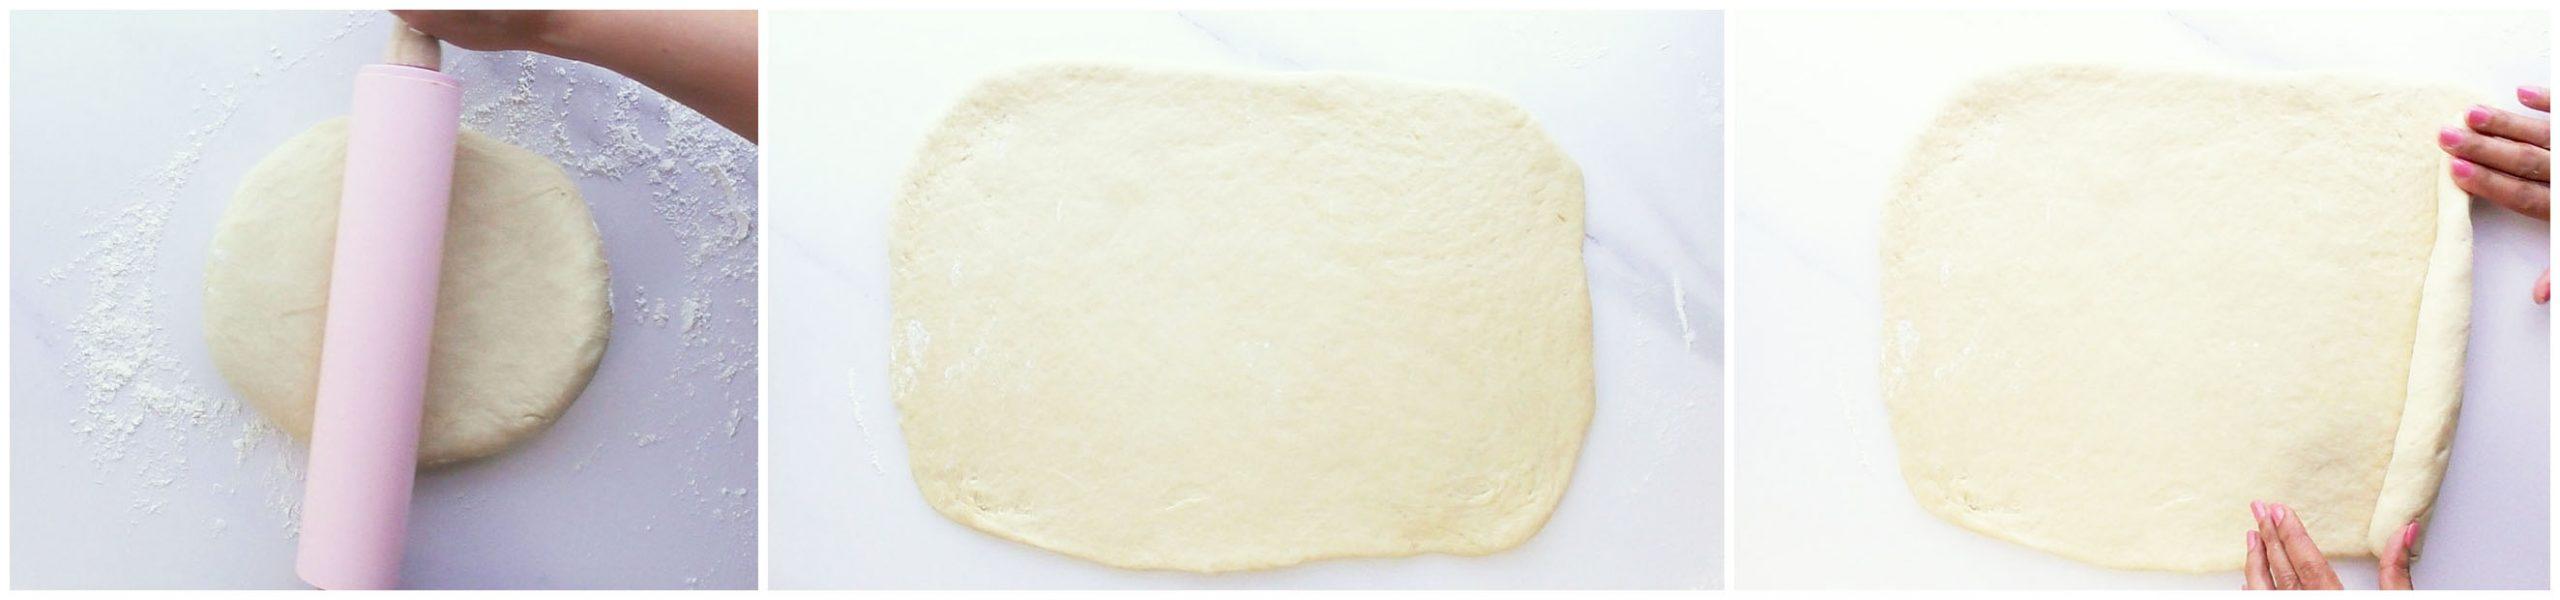 How to make Condensed Milk Bread